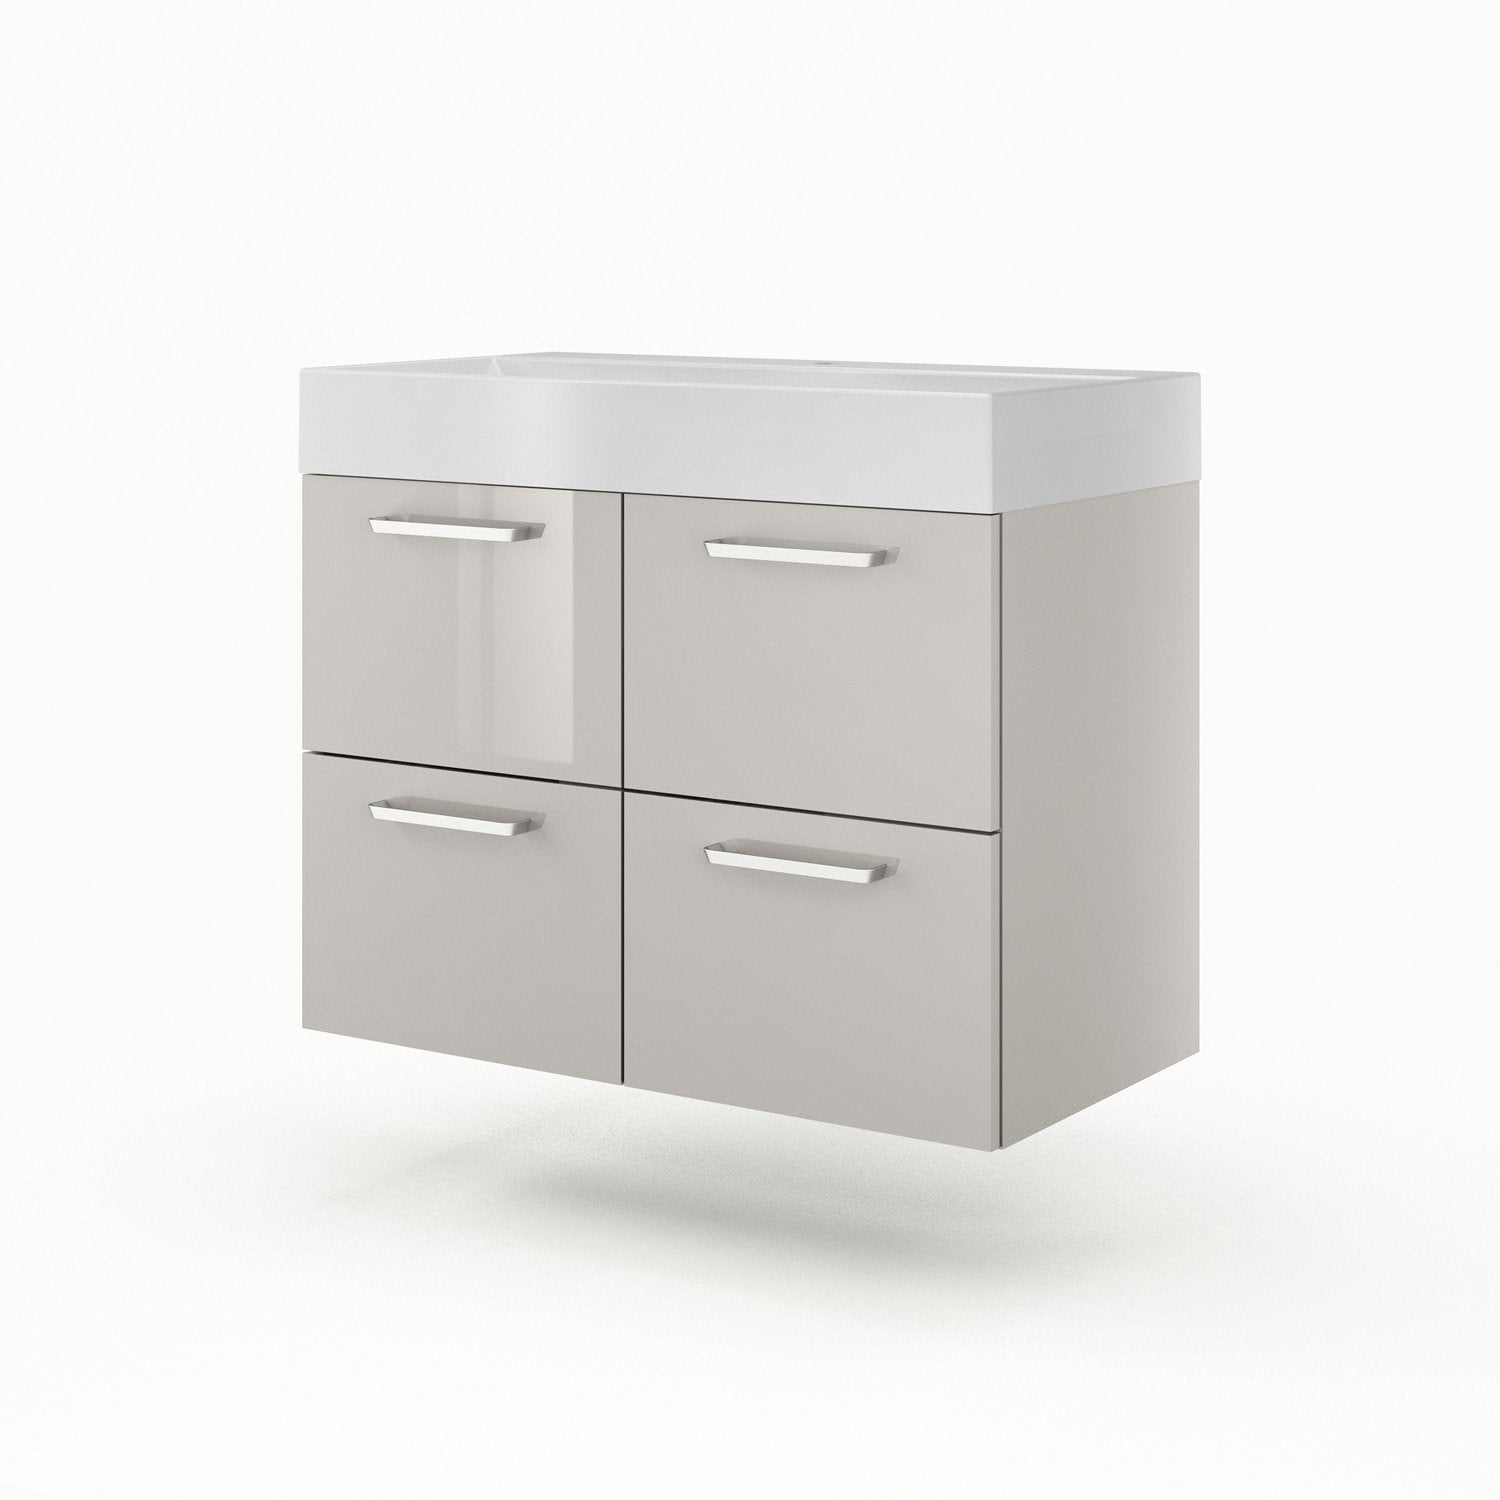 Meuble vasque 90 cm taupe neo line leroy merlin for Meuble 90 cm